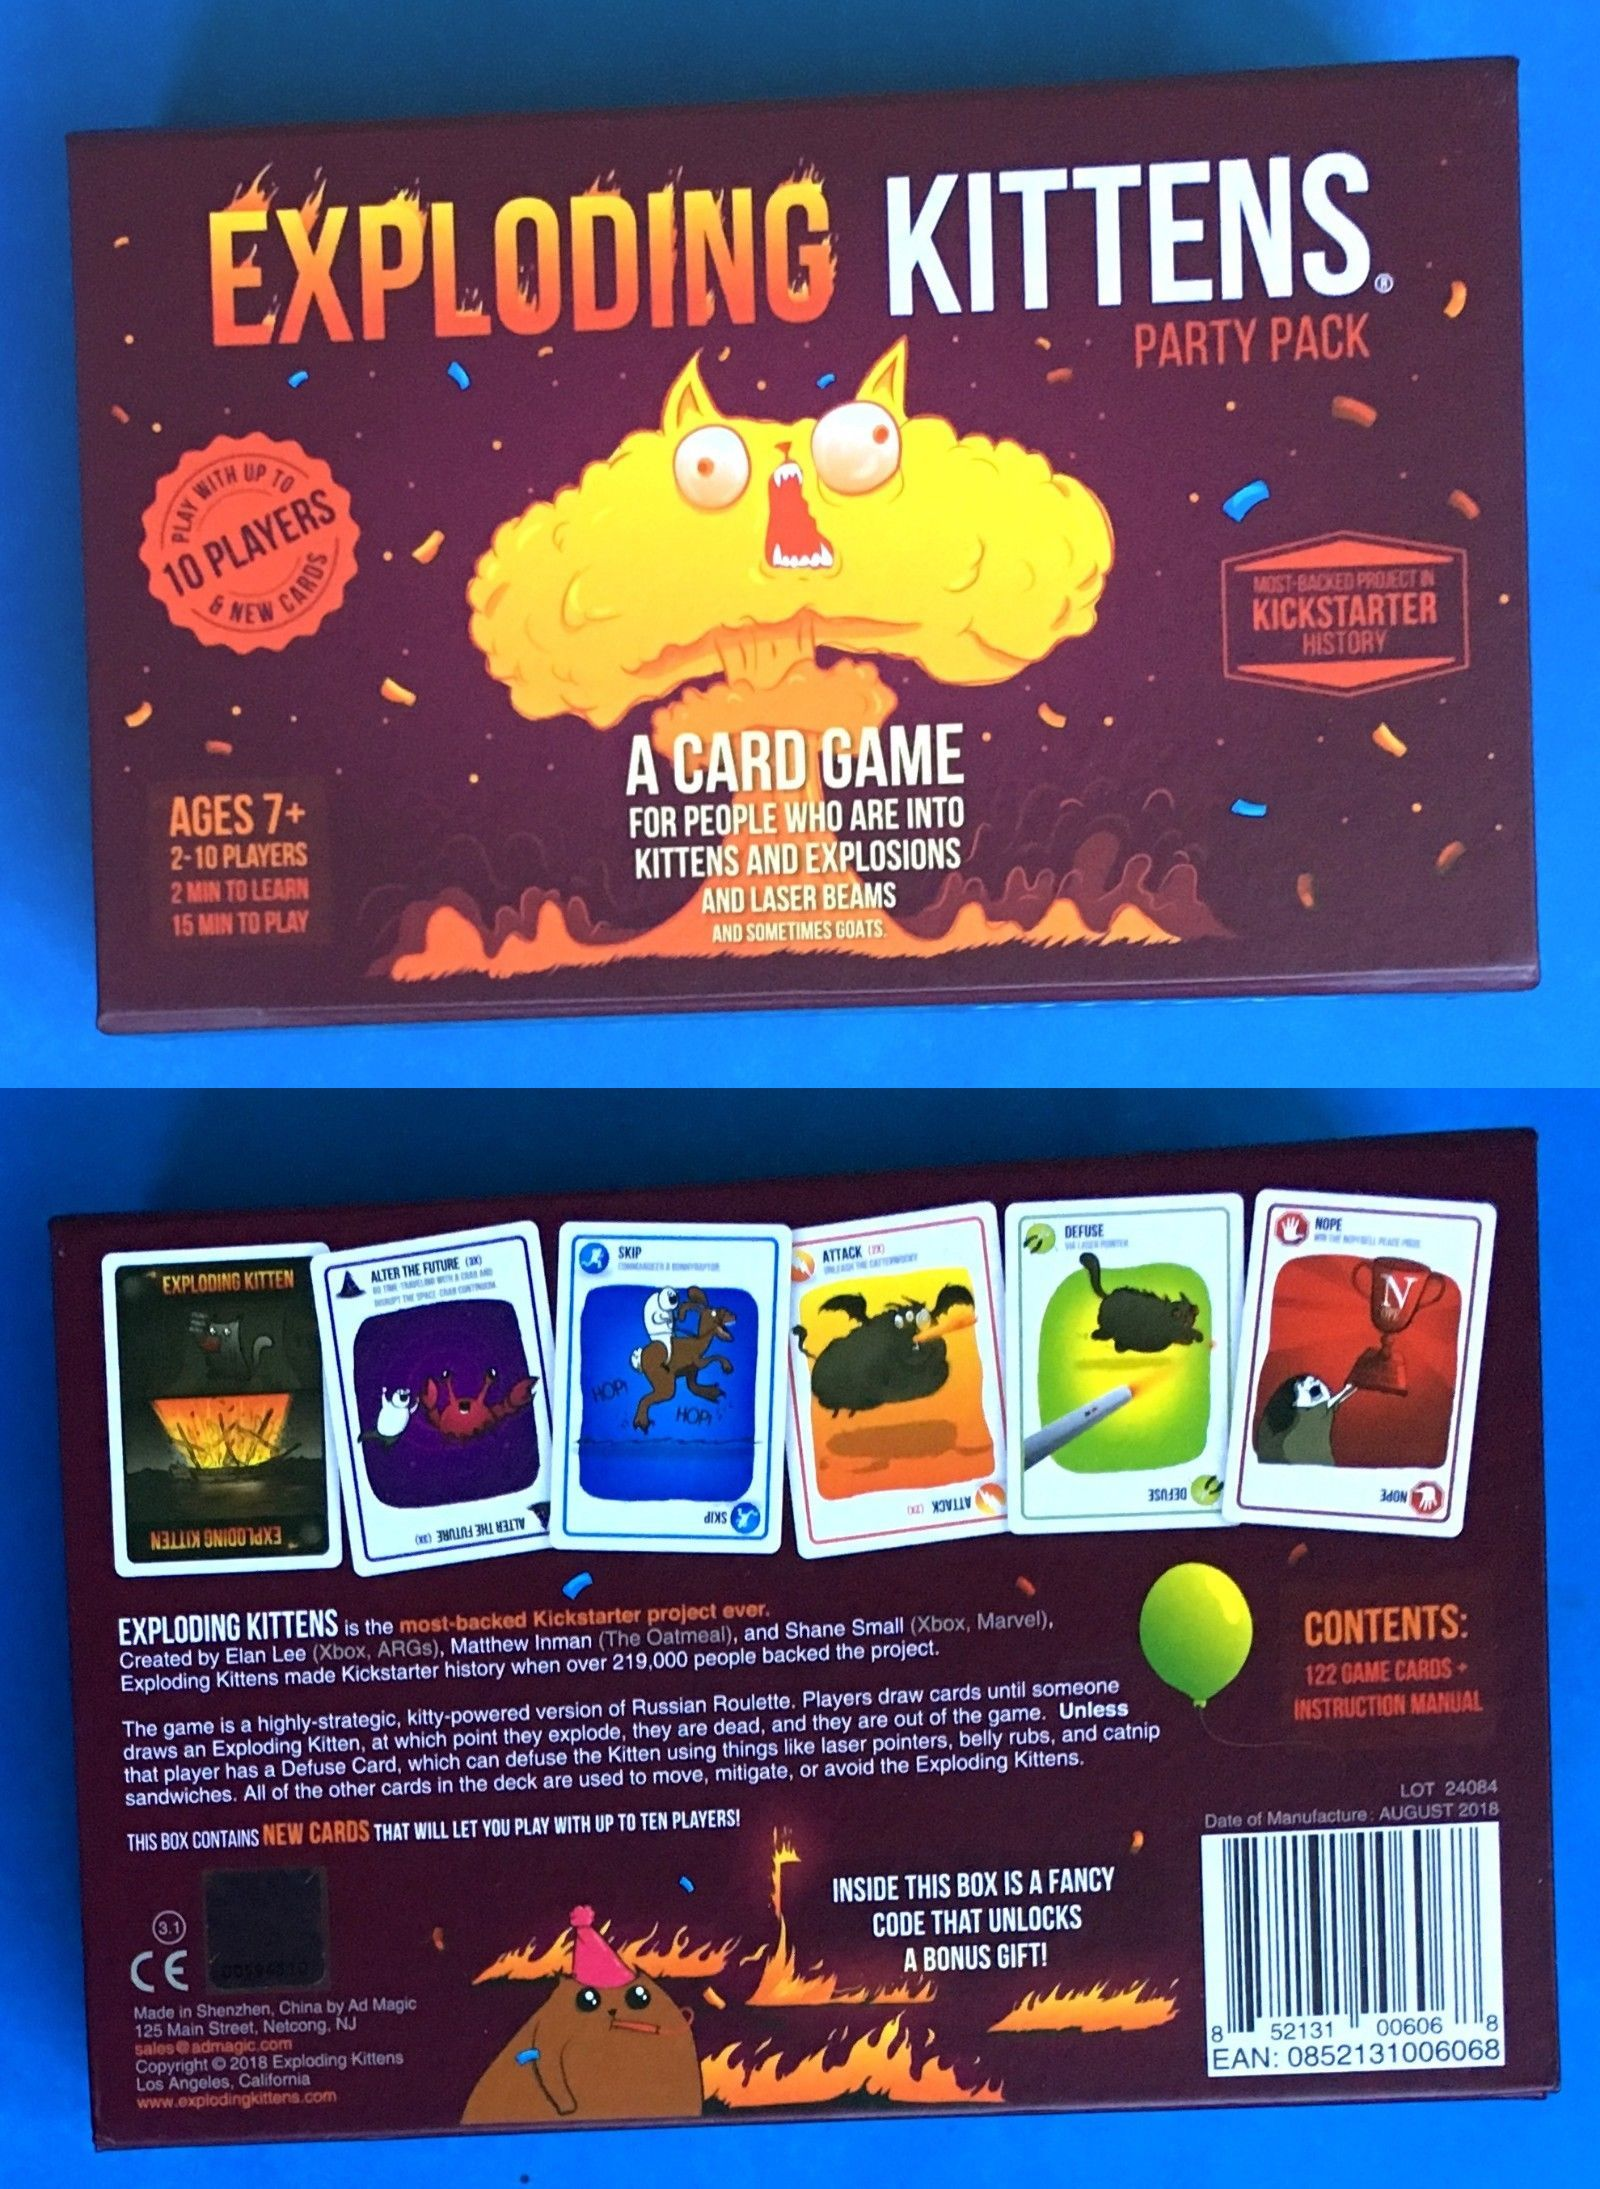 Other Card Games And Poker 2552 Exploding Kittens Party Pack 10 Player Card Game New Version Read Desc B Card Games Party Card Games Kitten Party